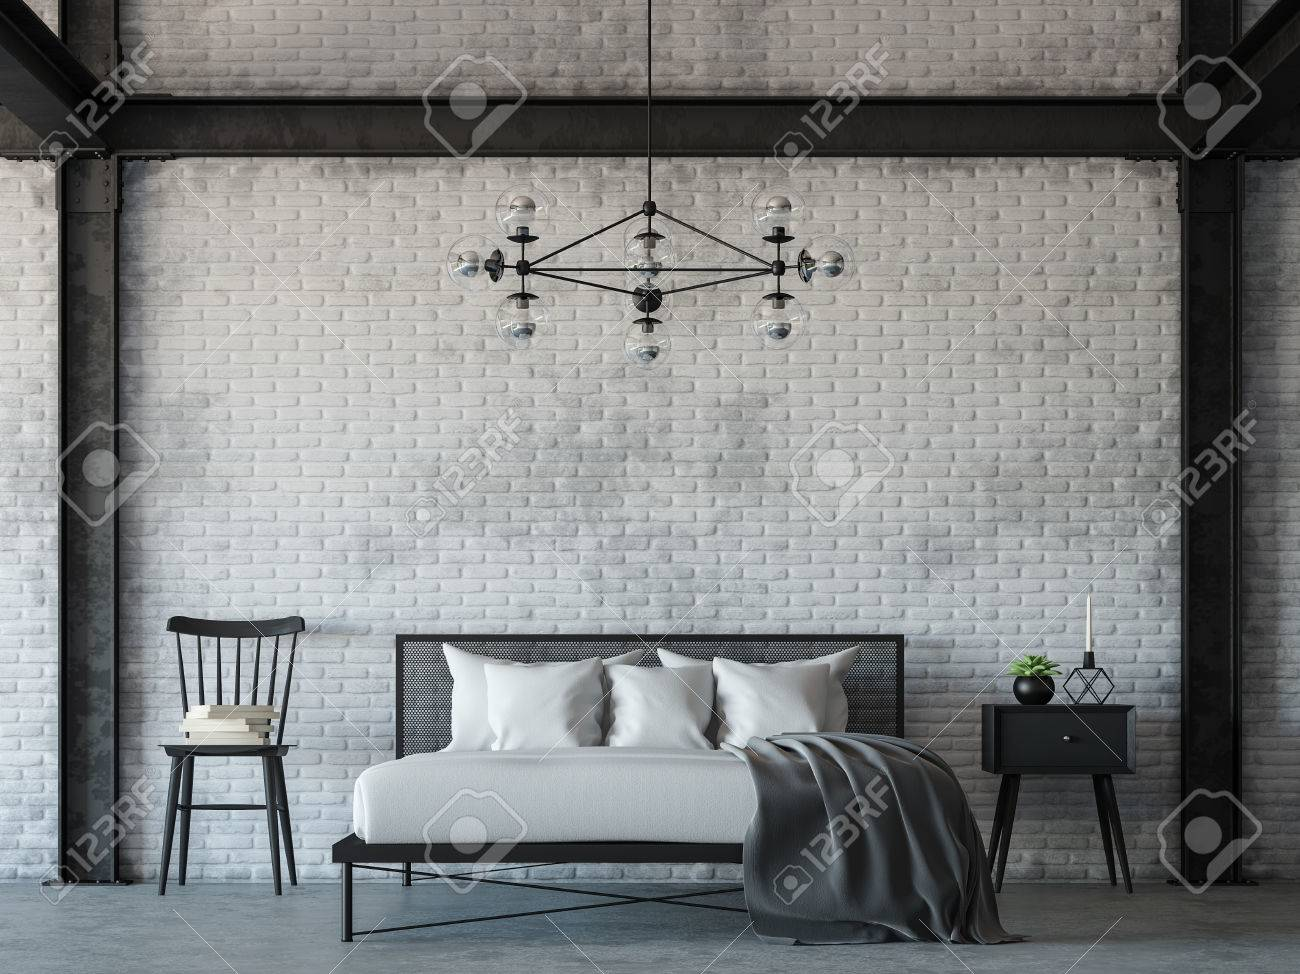 Loft style bedroom 3d rendering image.There are white brick wall,polished concrete floor and black steel structure.Decorate with hanging lamp.Furnished with black and white furniture. - 83297258